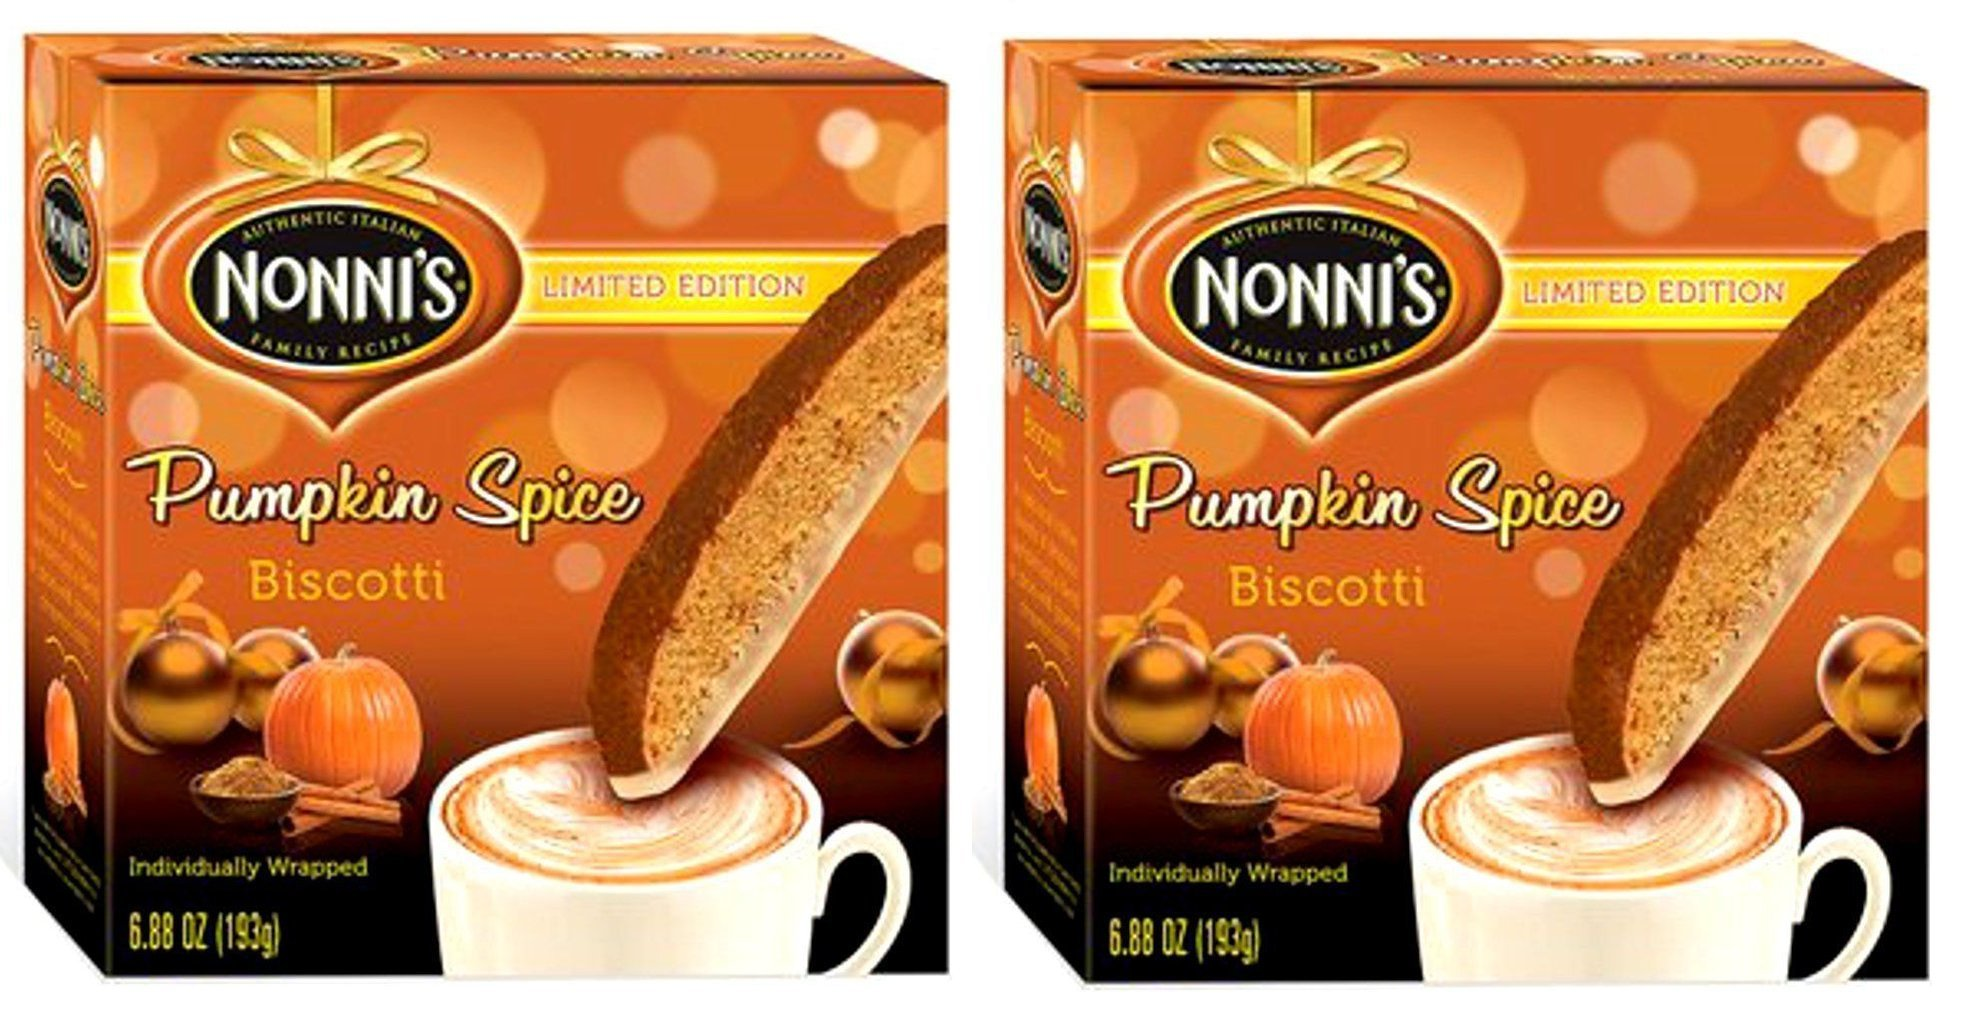 Nonnis PUMPKIN SPICE Biscotti Limited Edition Individually Wrapped 6.88 Oz. (Pack of 2) by Nonnis